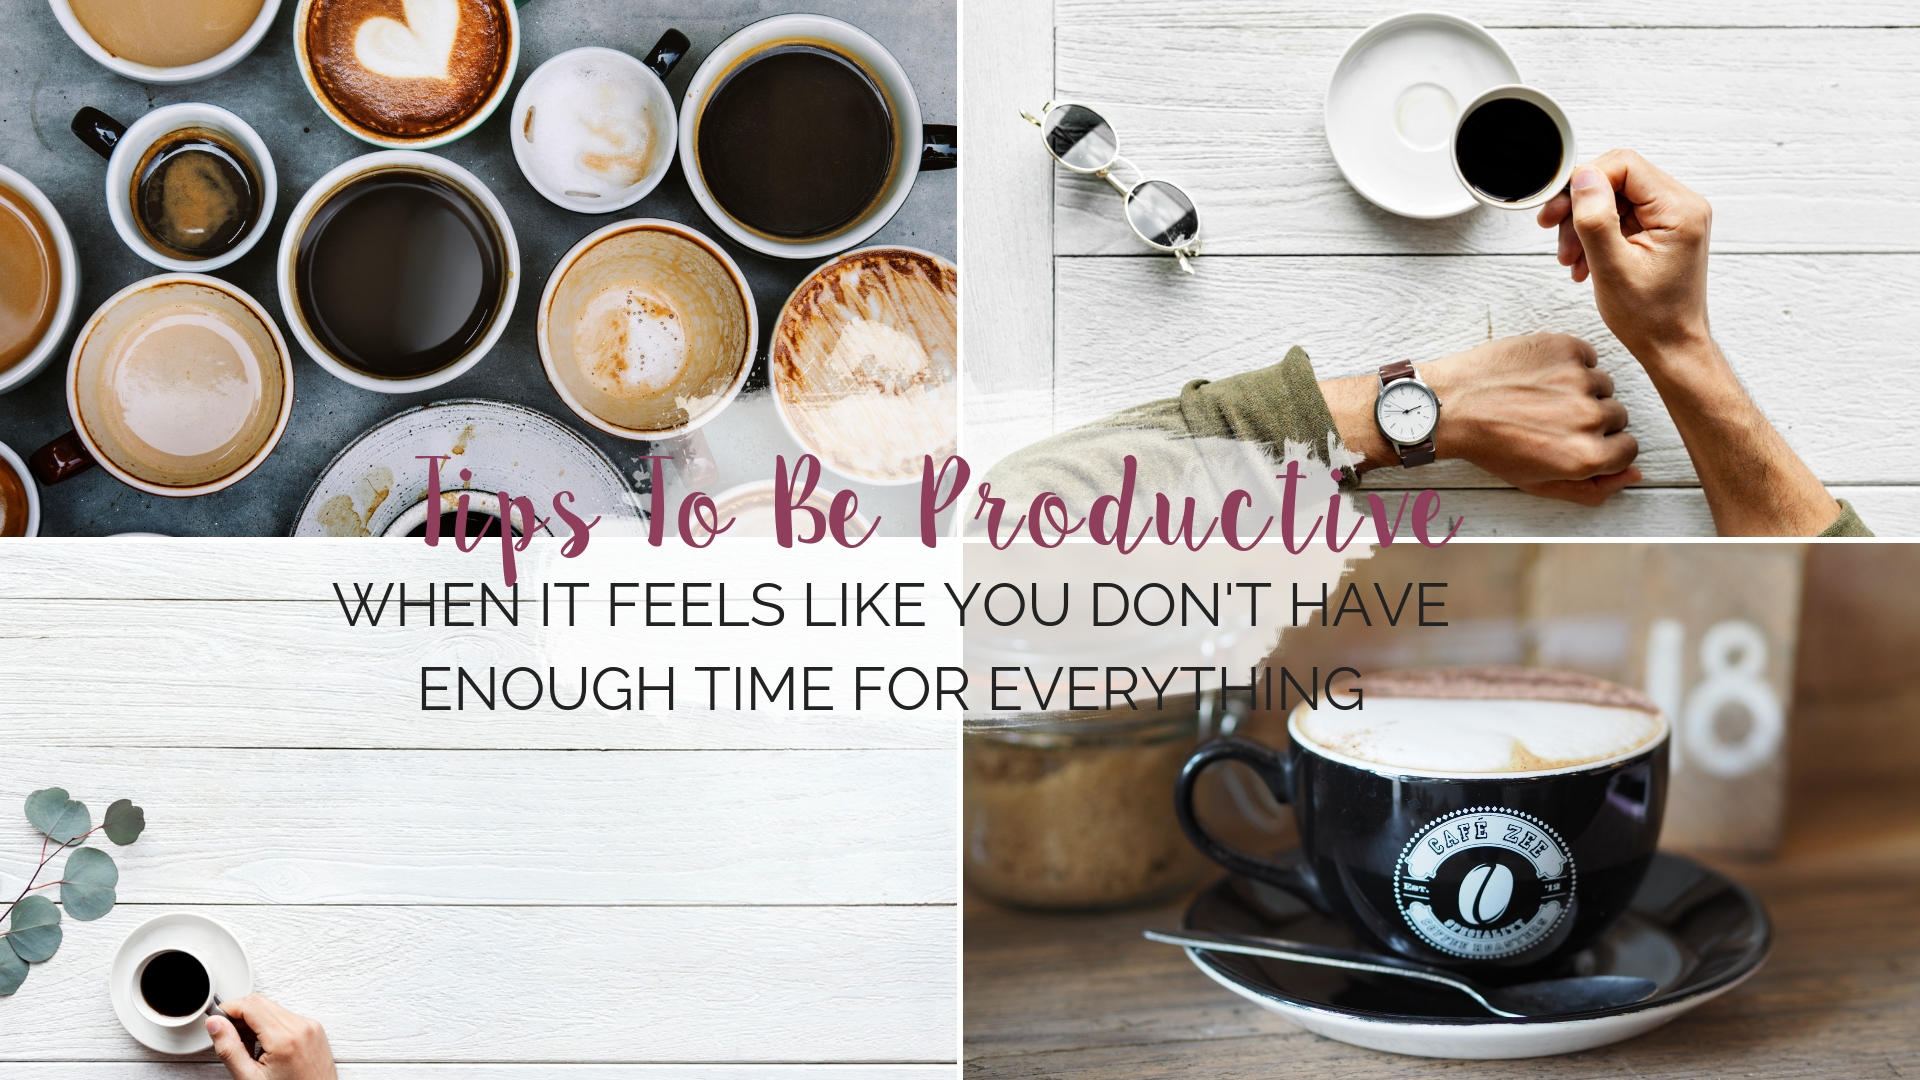 Being Productive When It Feels Like You Don't Have Enough Time* || Life Lately